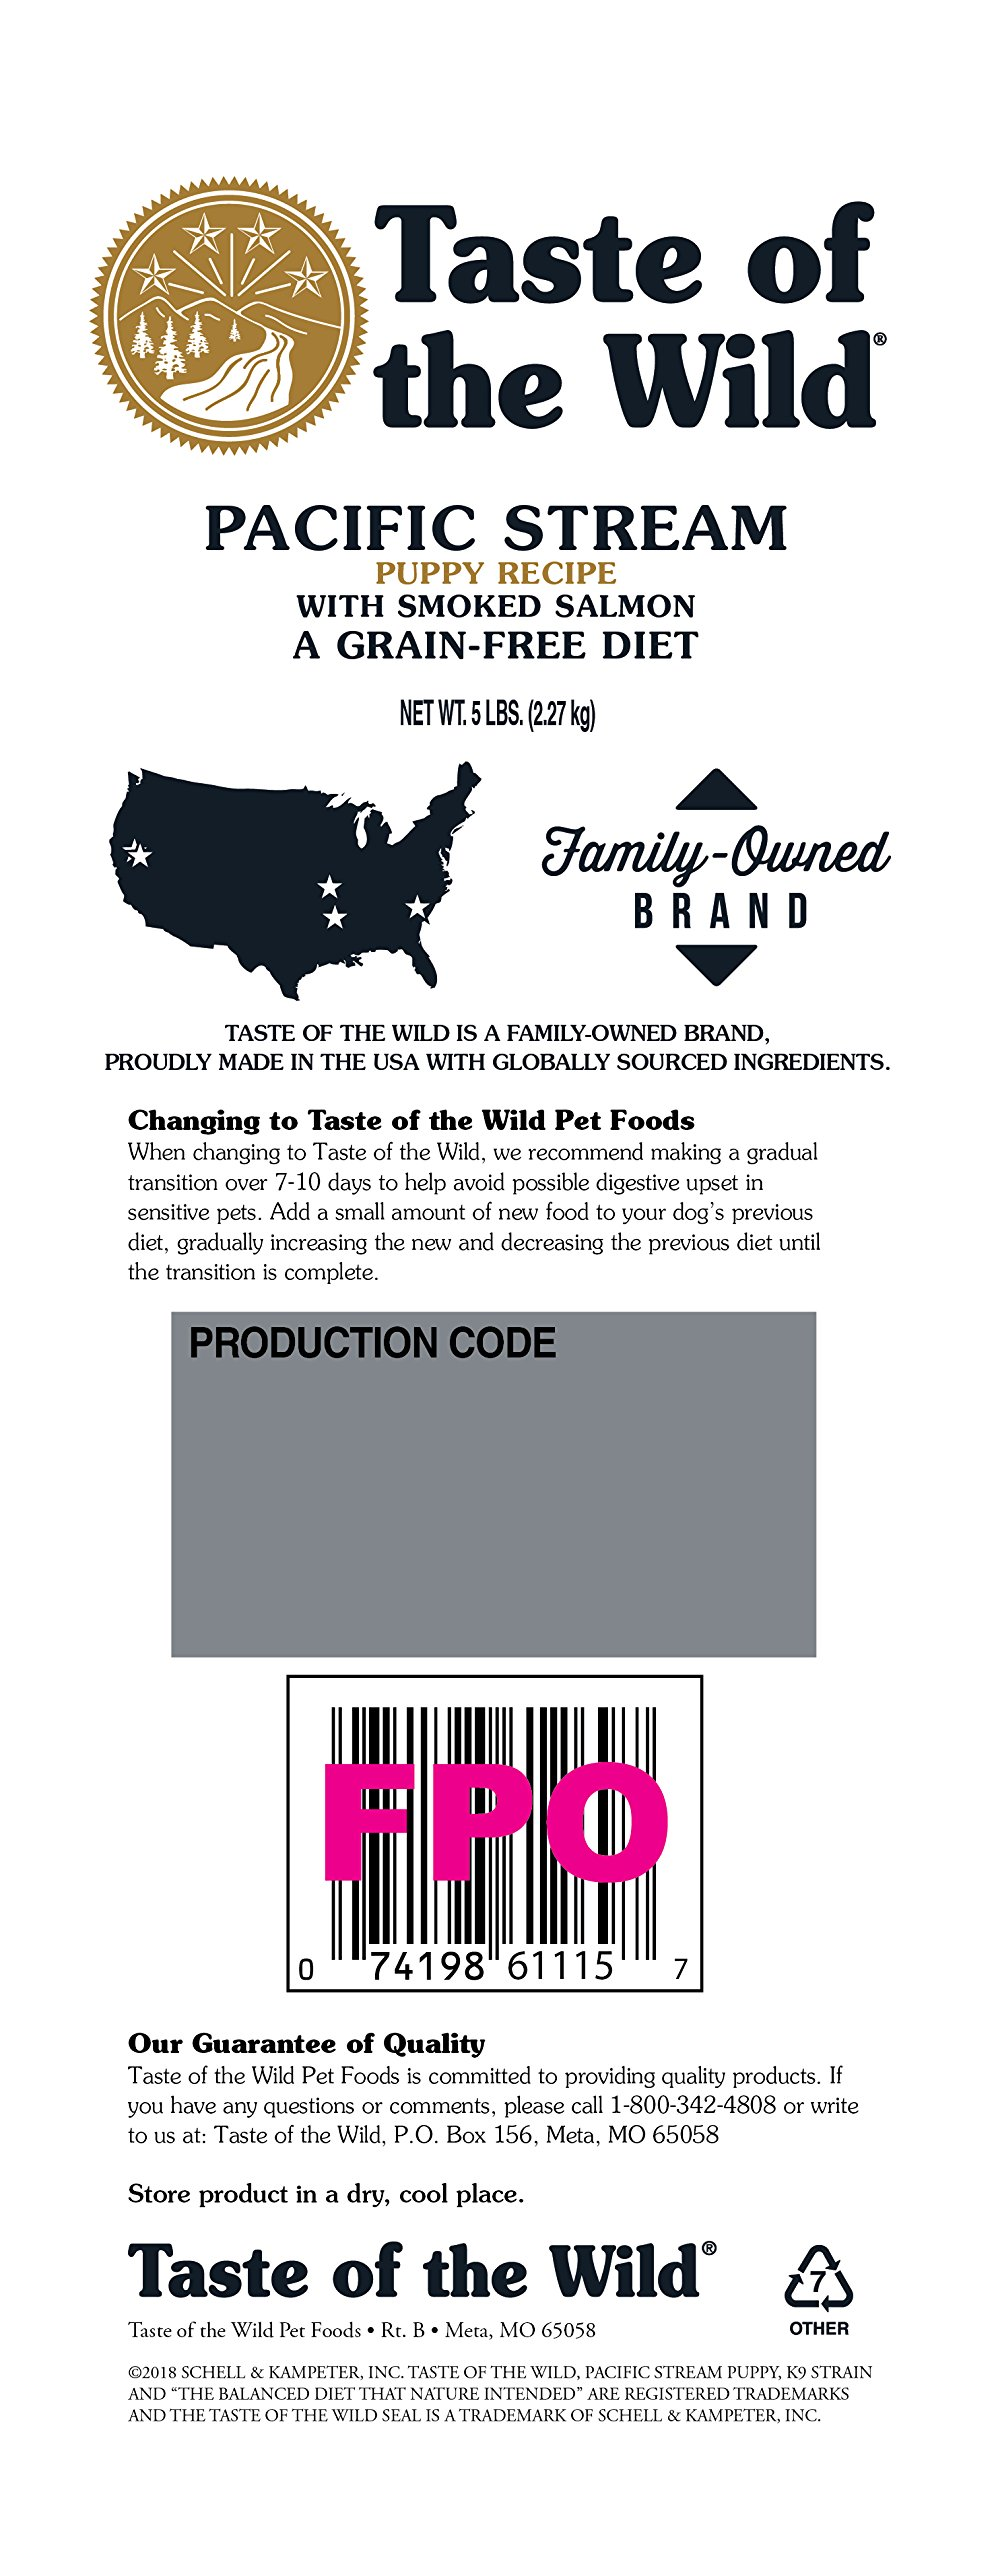 Details about Taste of the Wild Pacific Stream With Smoked Salmon Puppy  Food, 5 lbs